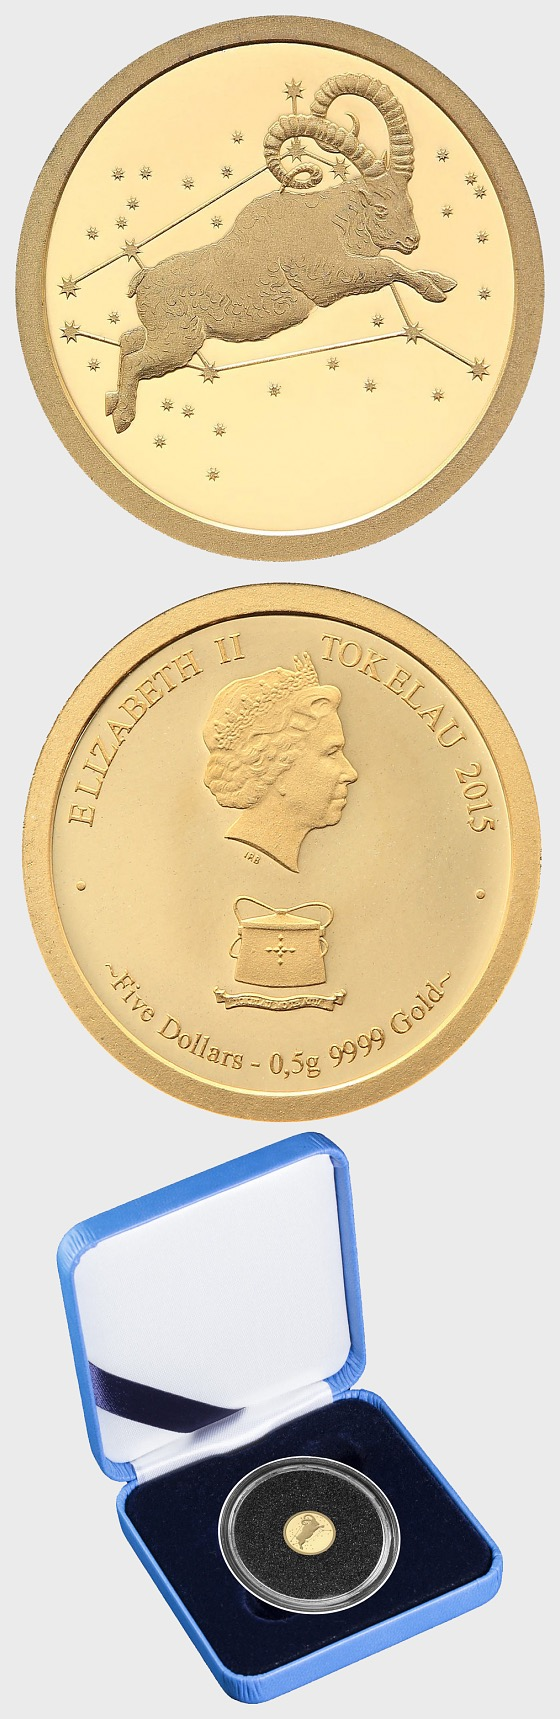 Aries 0.5g Gold Proof Tokelau Coin - Gold Coin